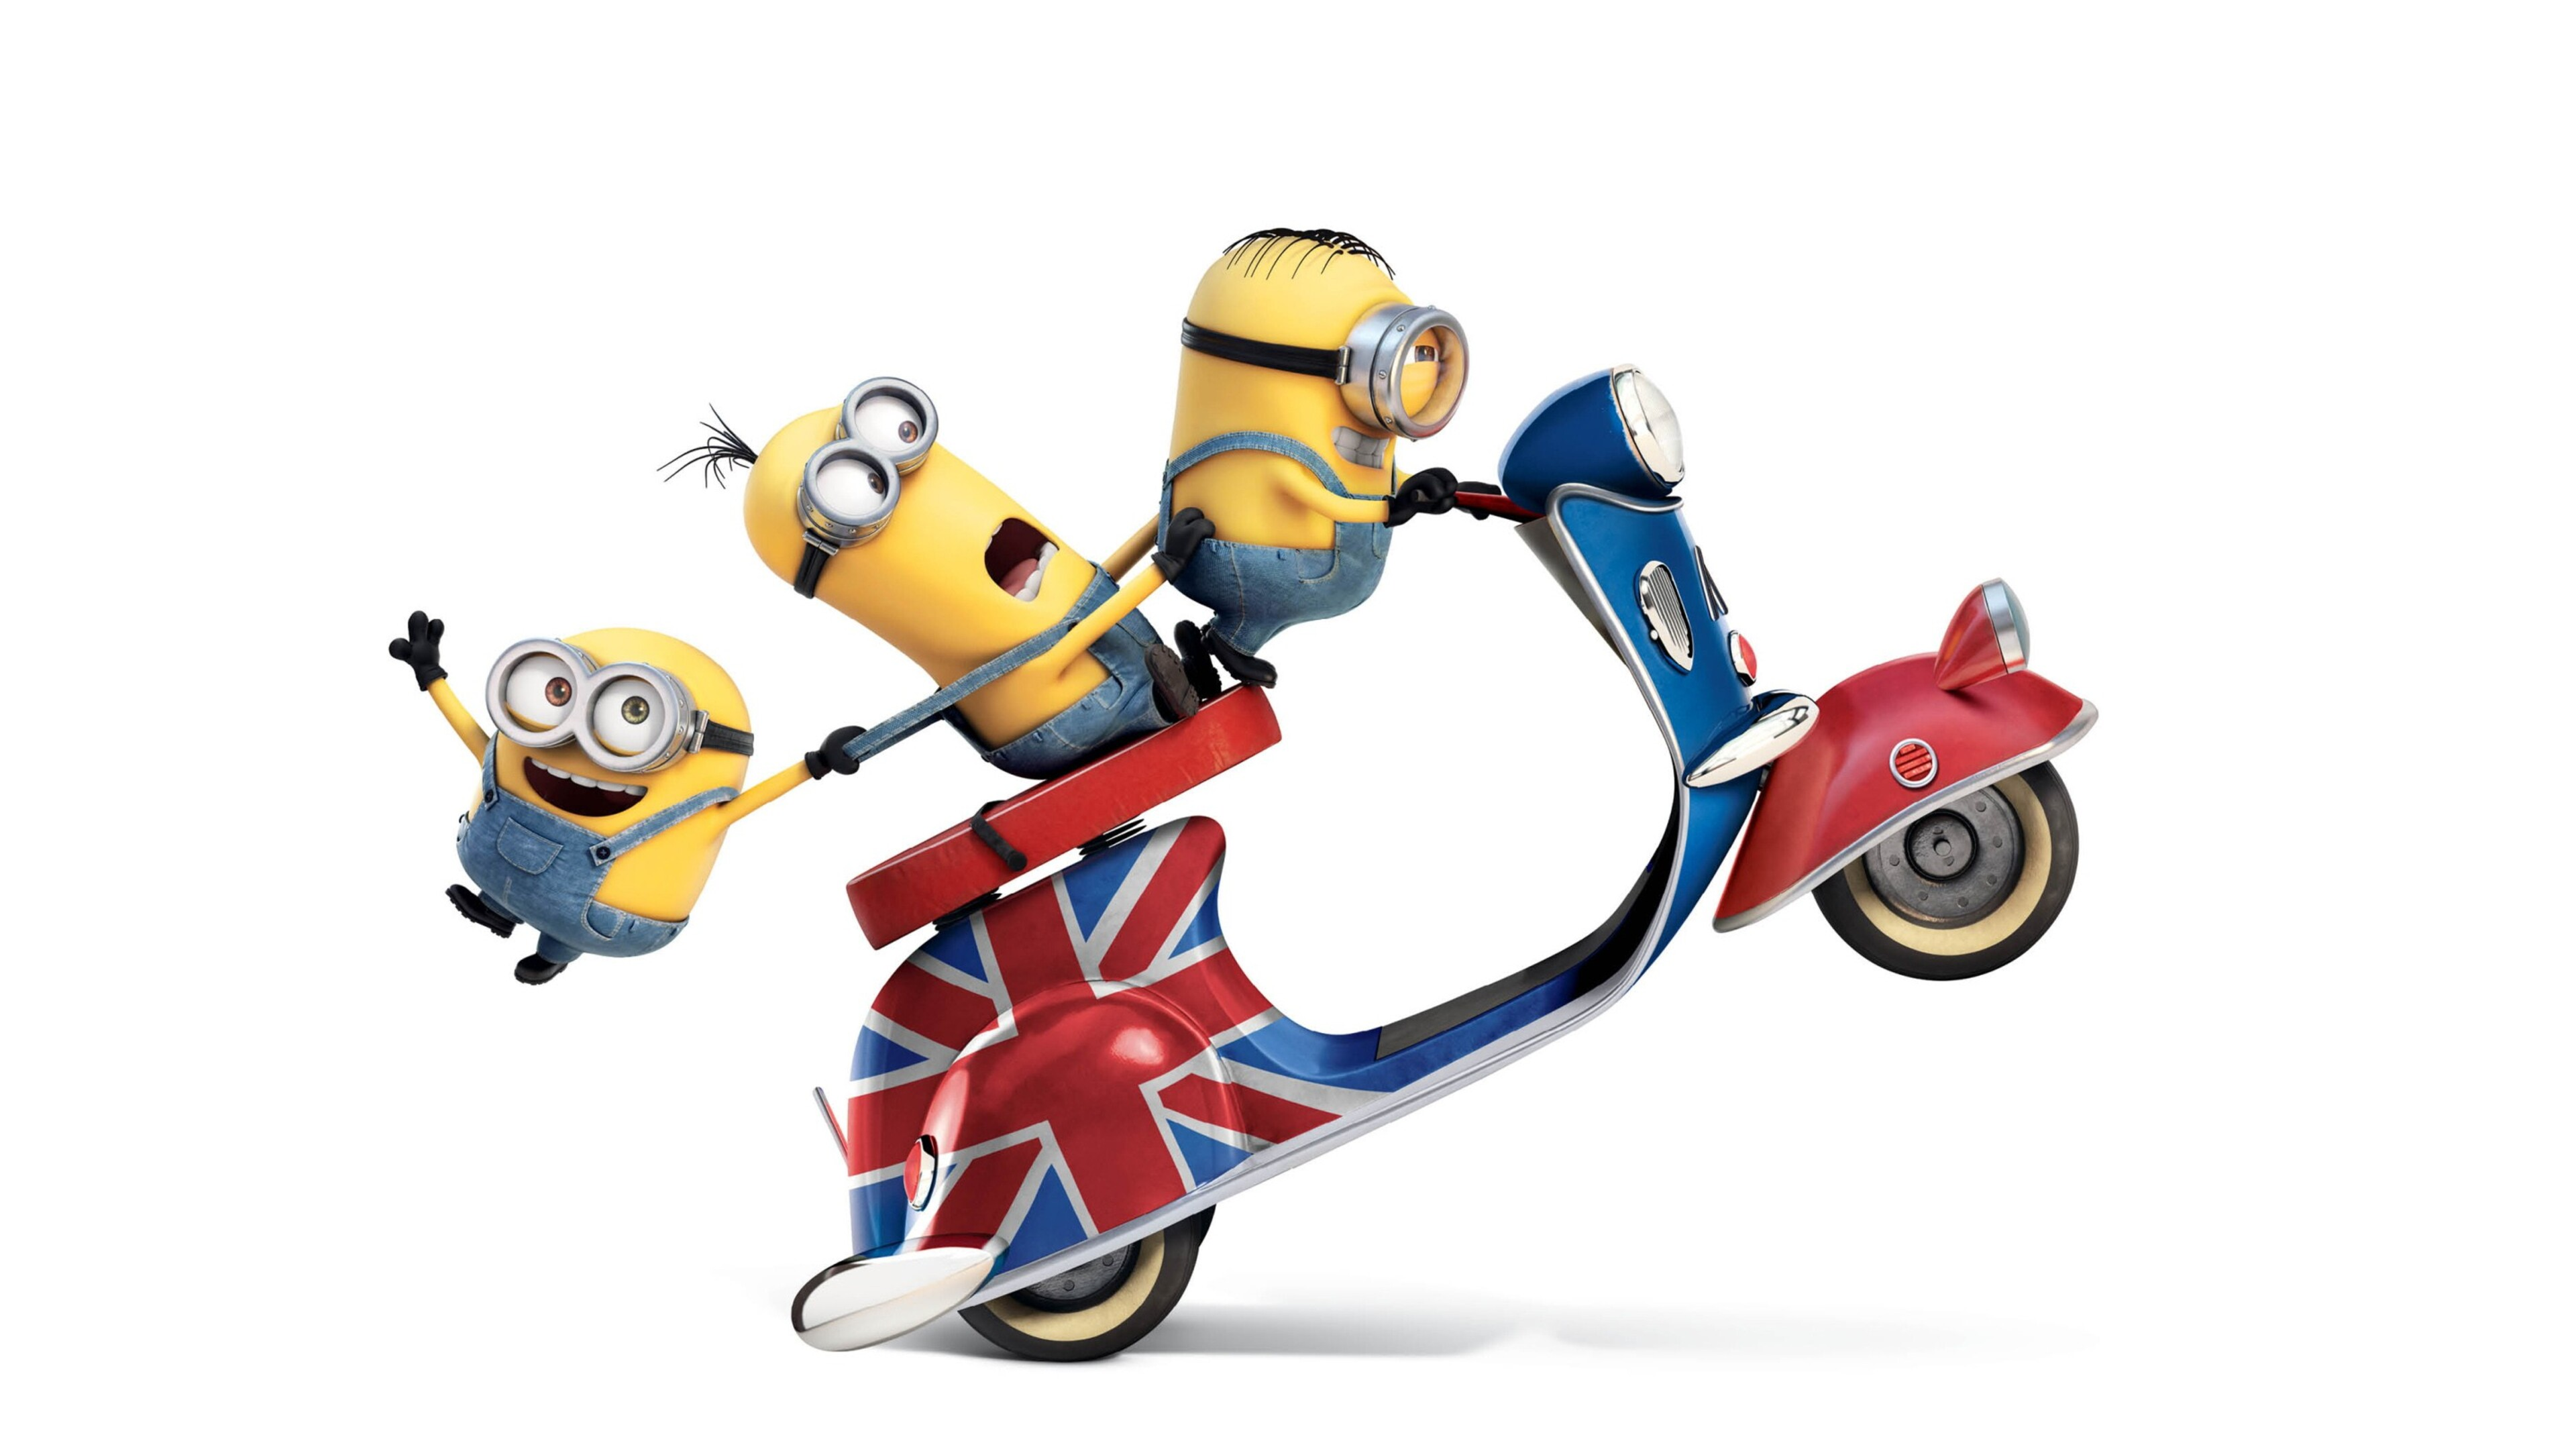 3840x2160 minions funny 3 4k hd 4k wallpapers images